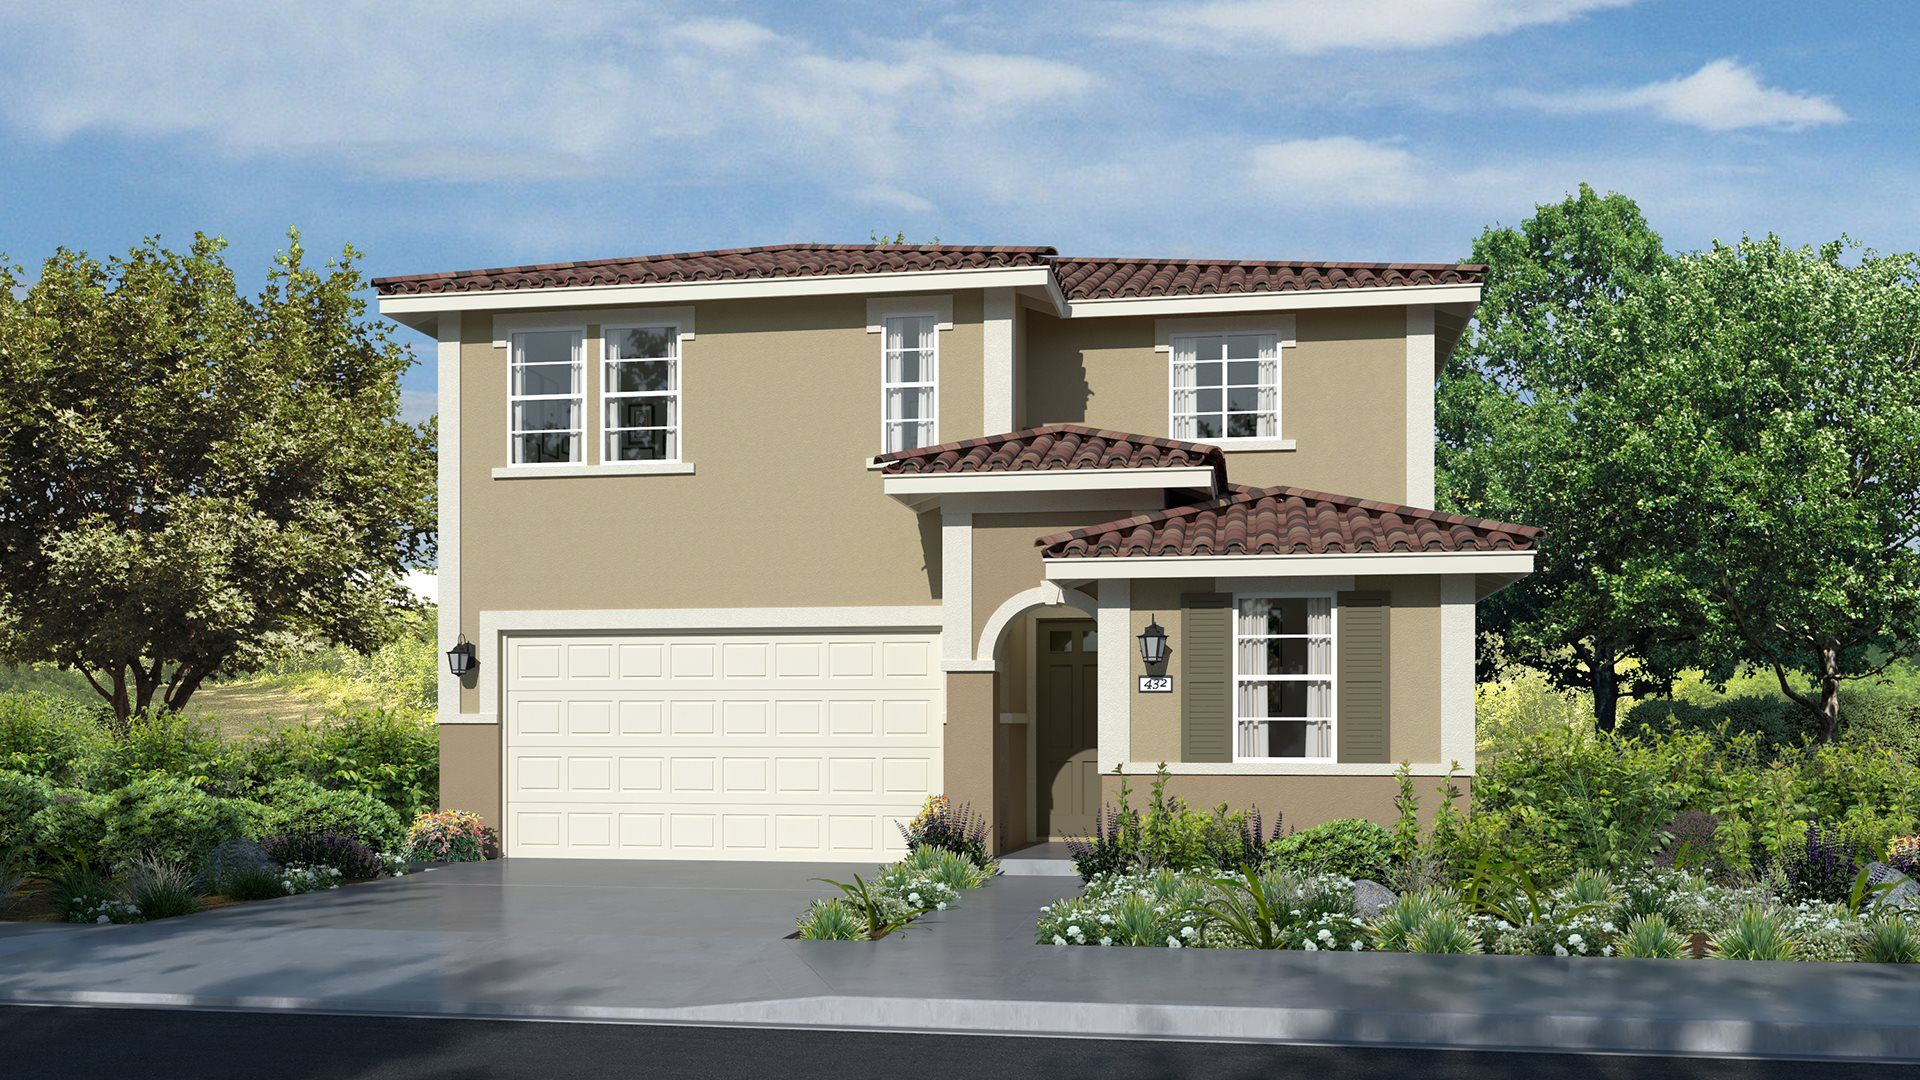 Residence 2620 | Elevation A